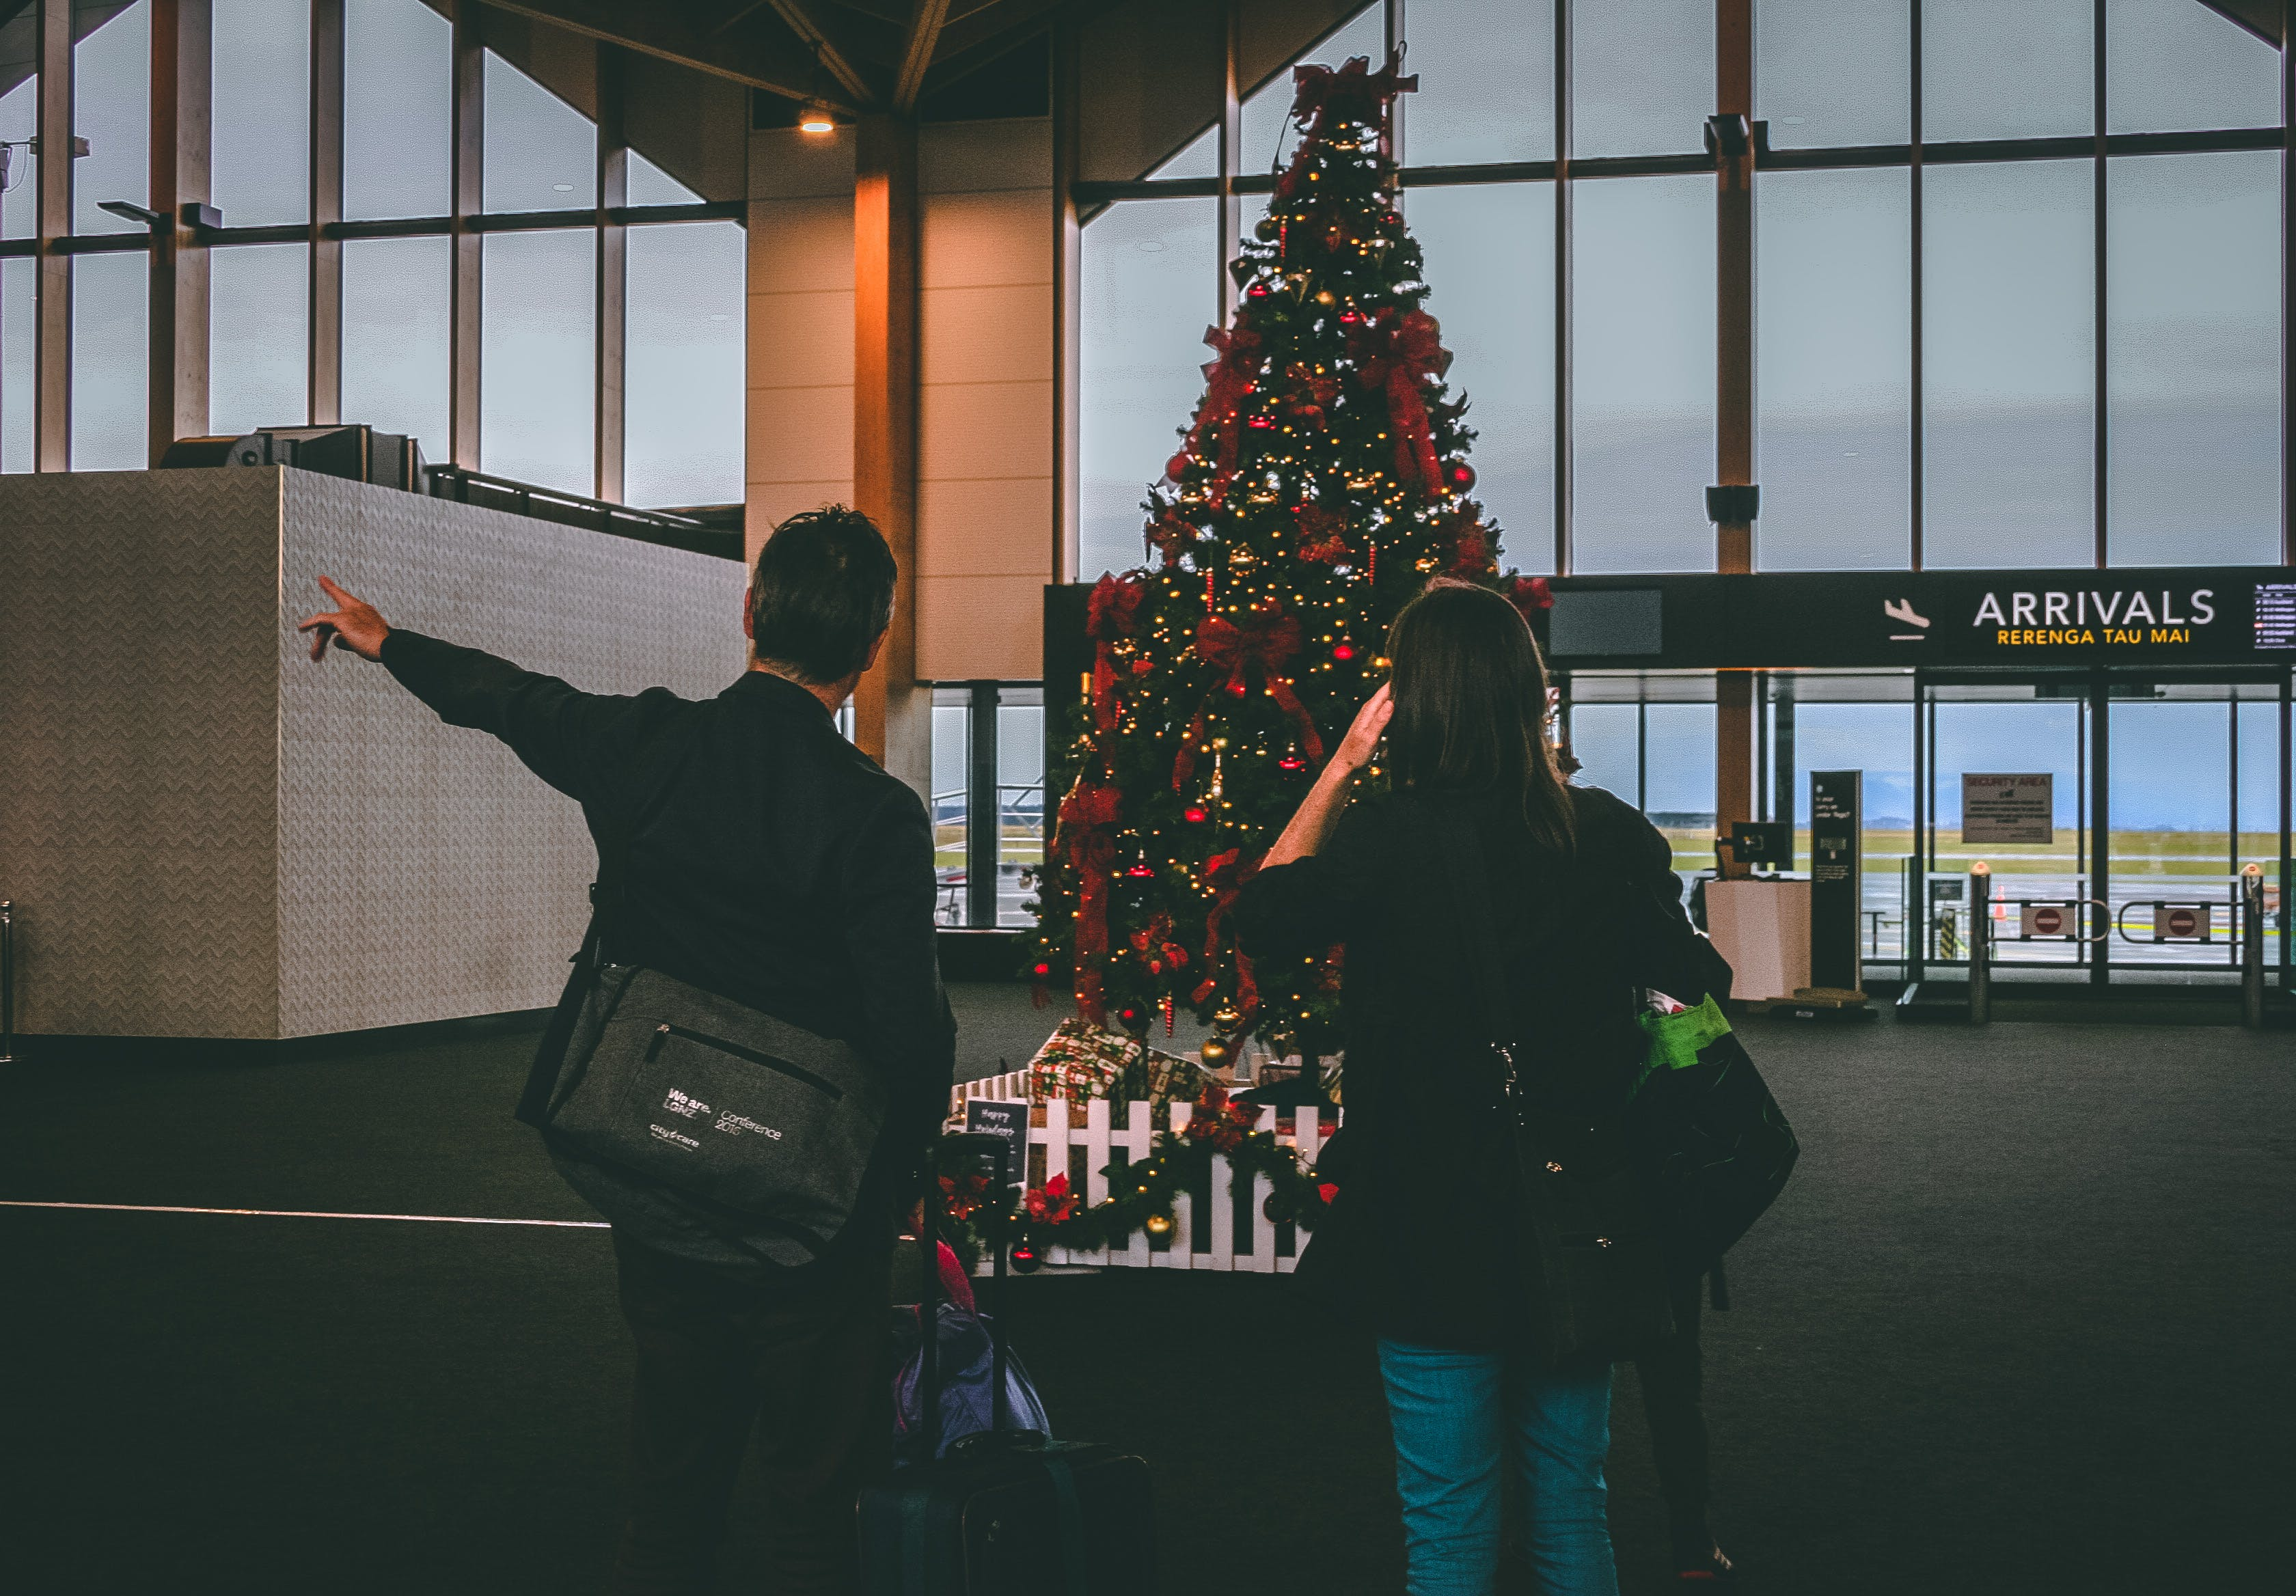 Man and Woman Staring at Christmas Tree